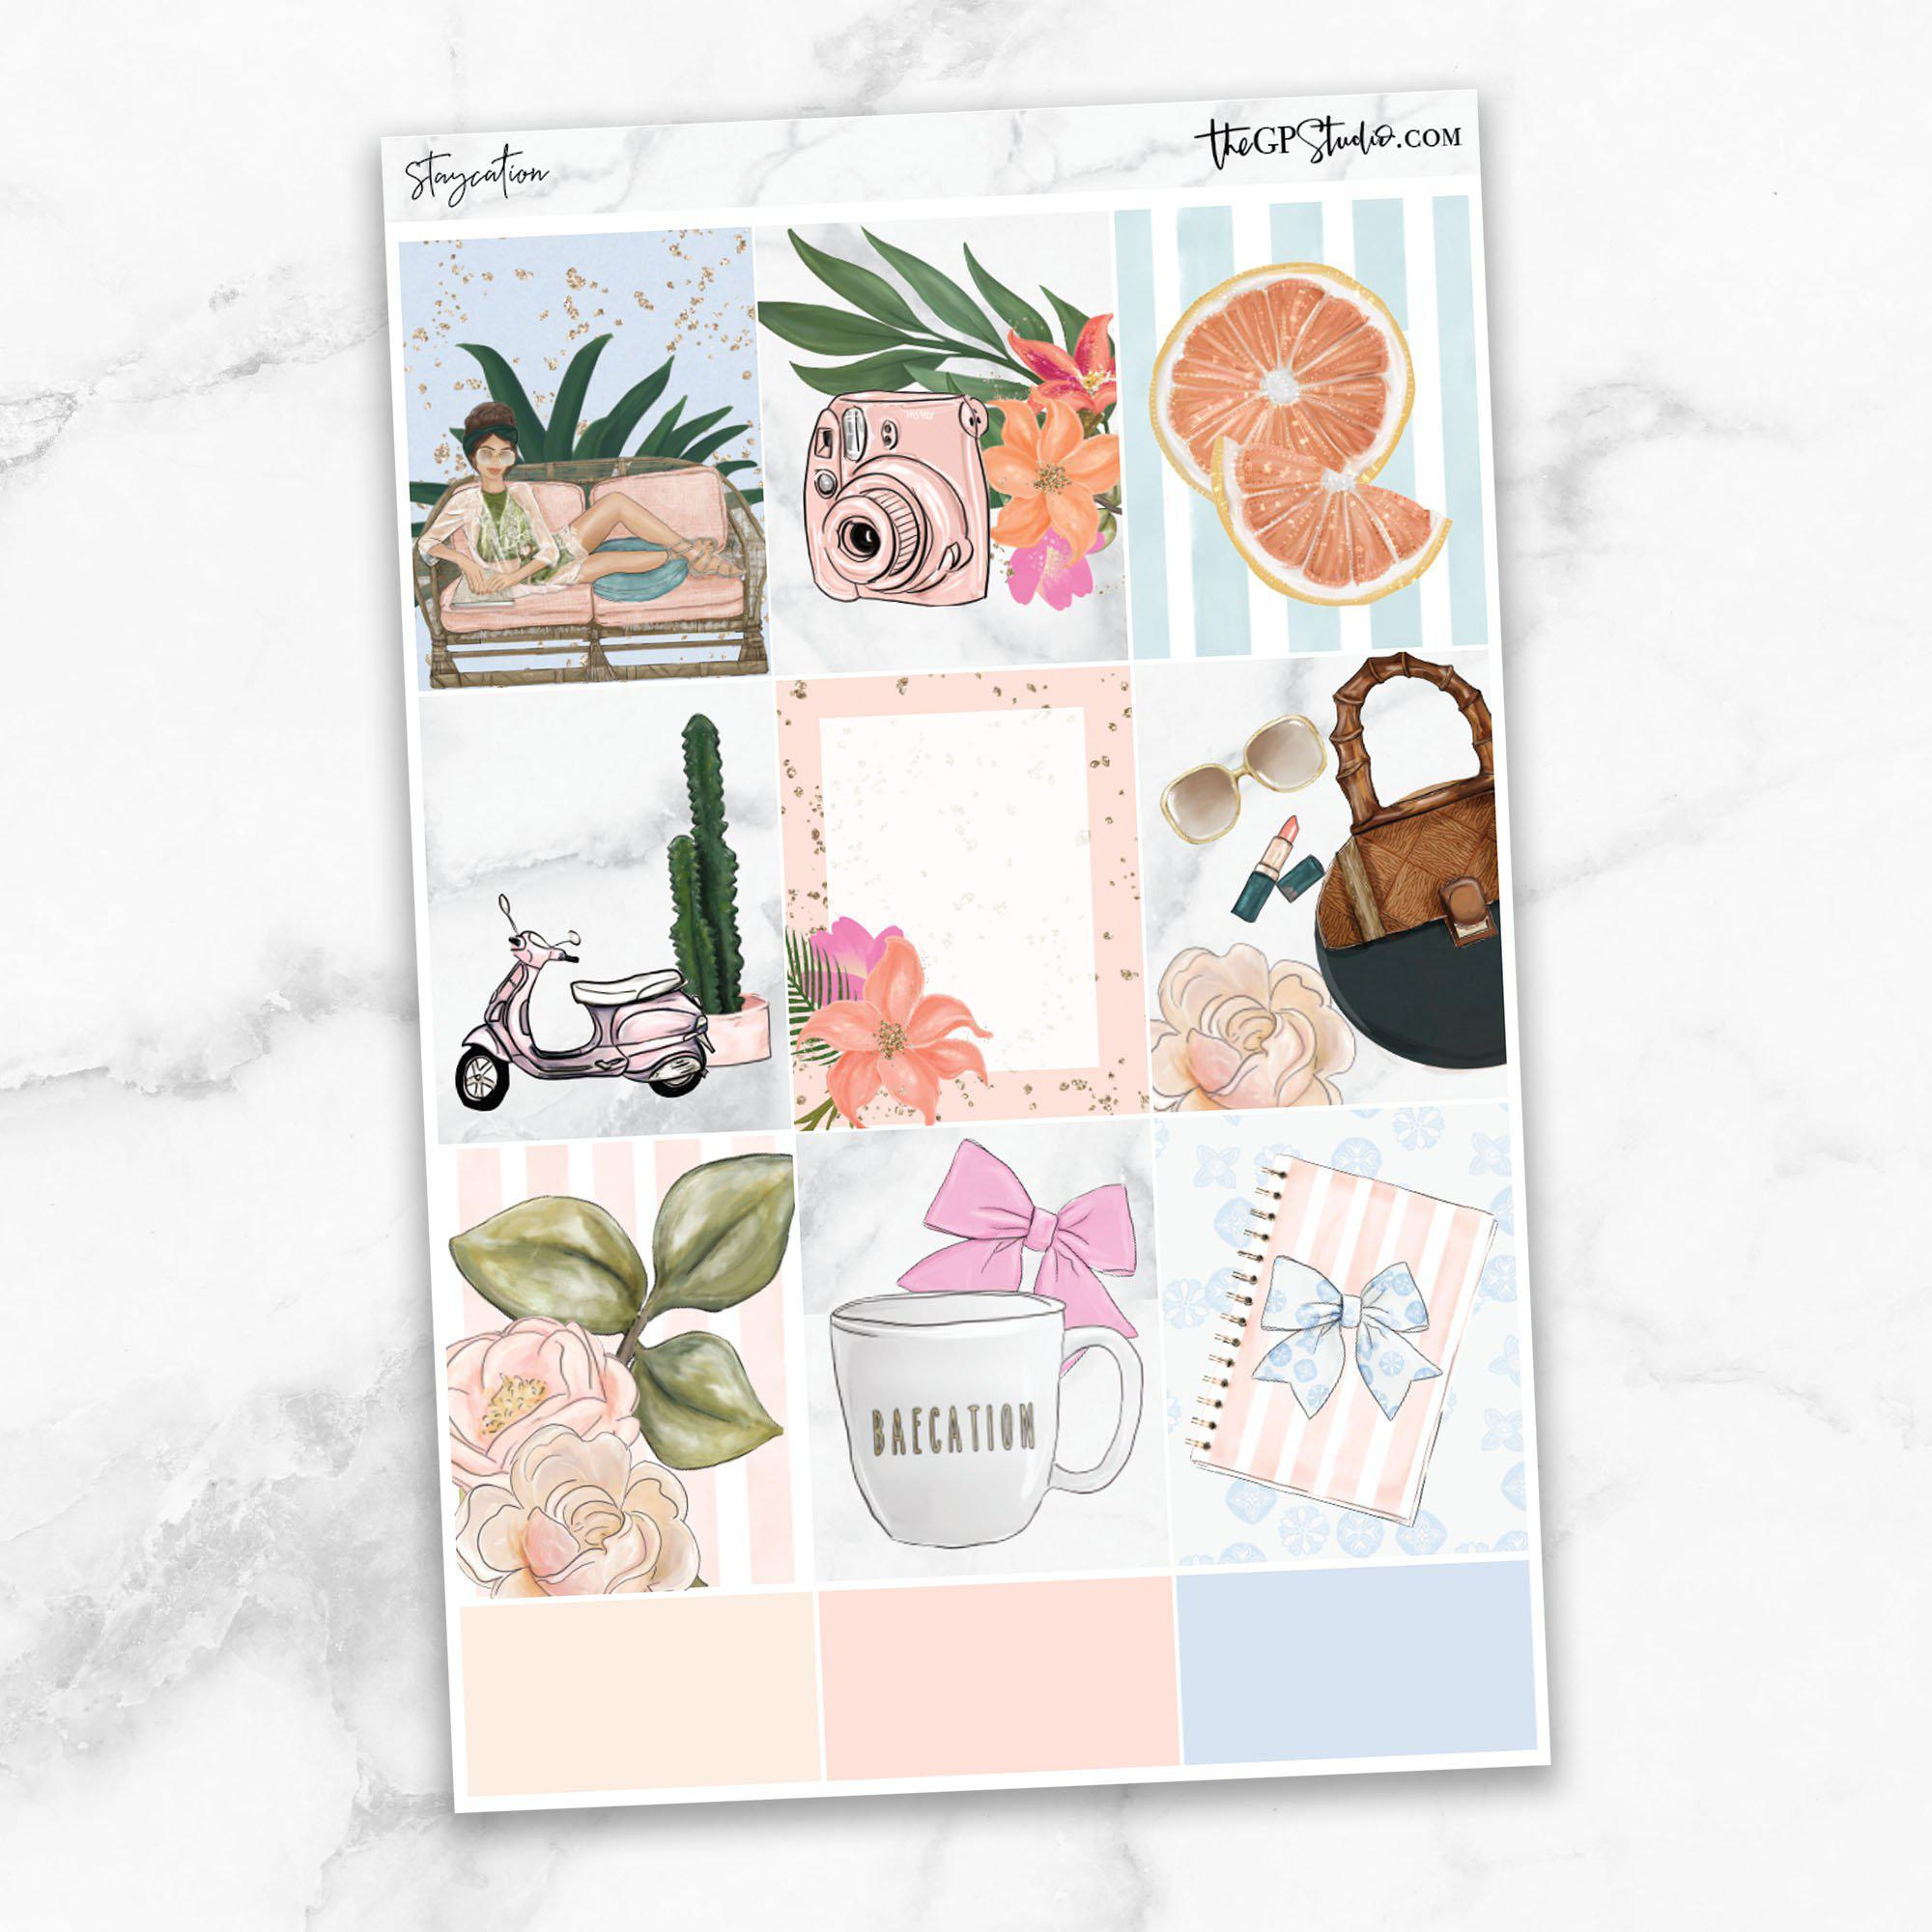 STAYCATION Full Boxes Planner Stickers-The GP Studio